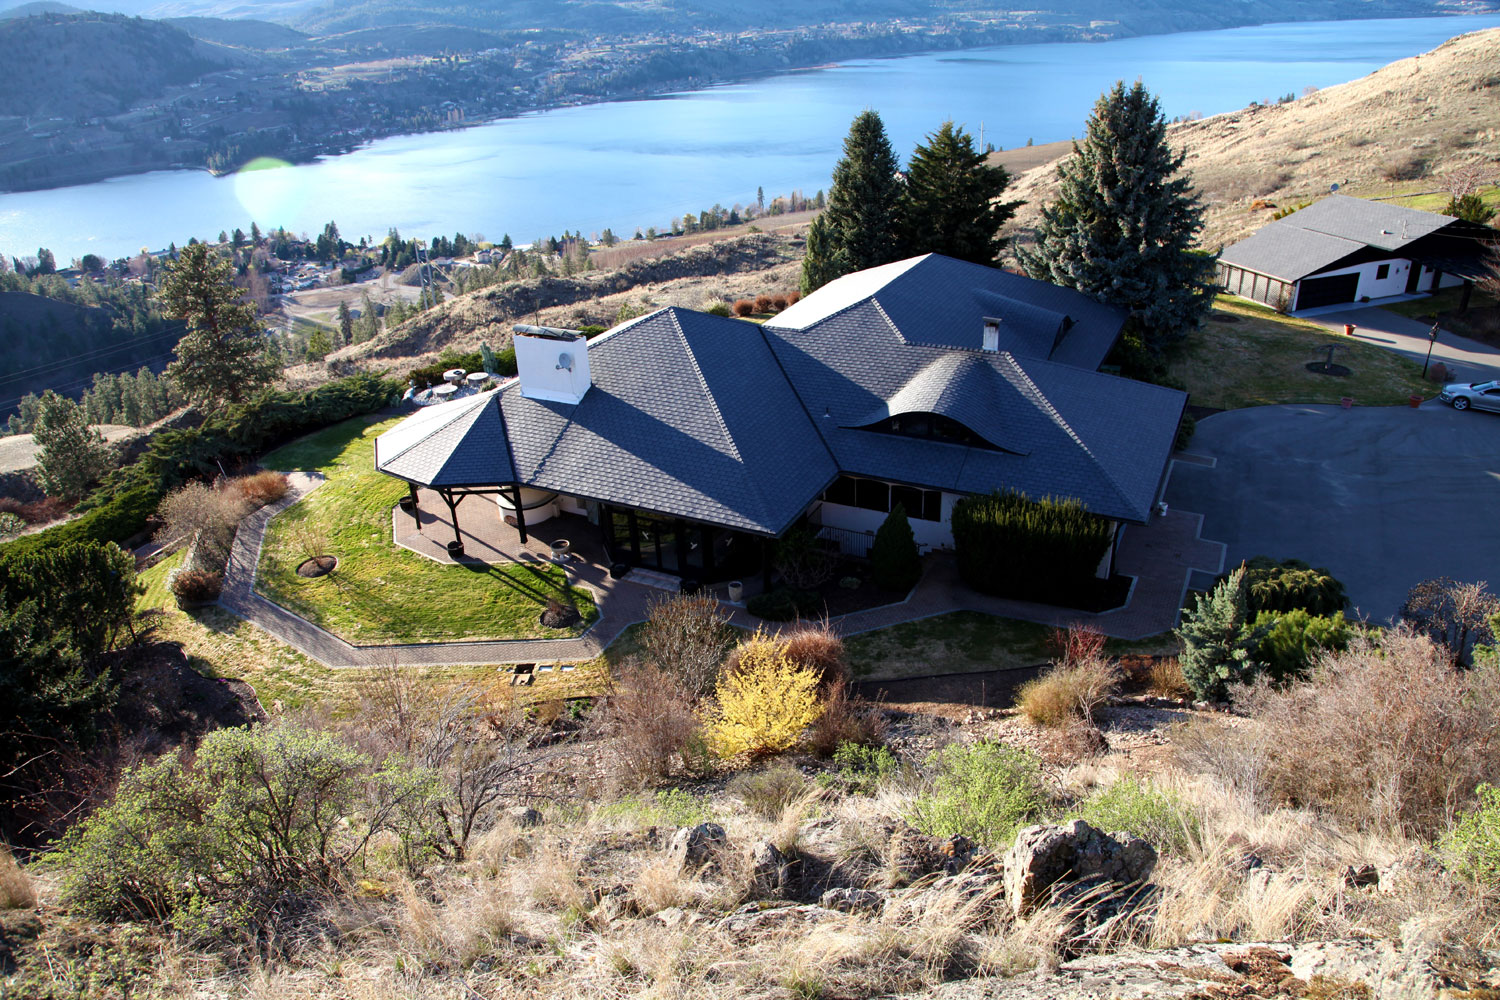 This private 200 acre estate ranch with 7000 sq. ft. offers outdoor living space with spacious indoor rooms & magnificent views.